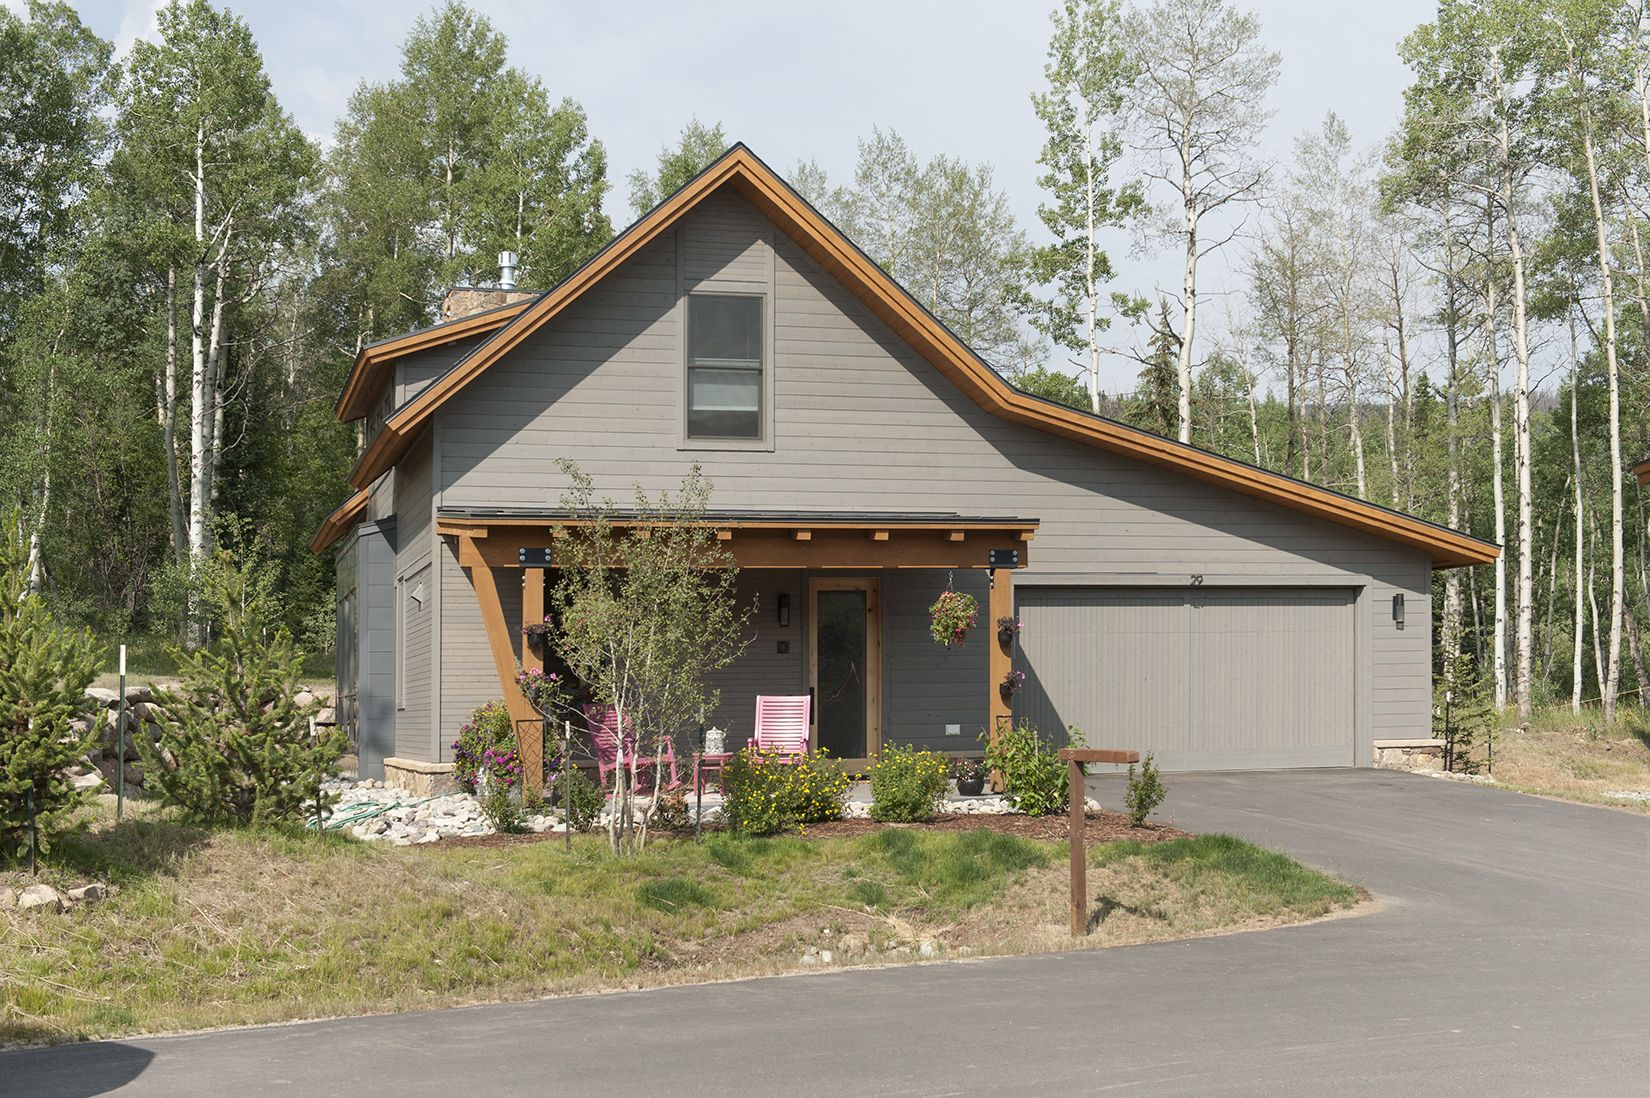 29 W Benjamin Way SILVERTHORNE, Colorado 80498